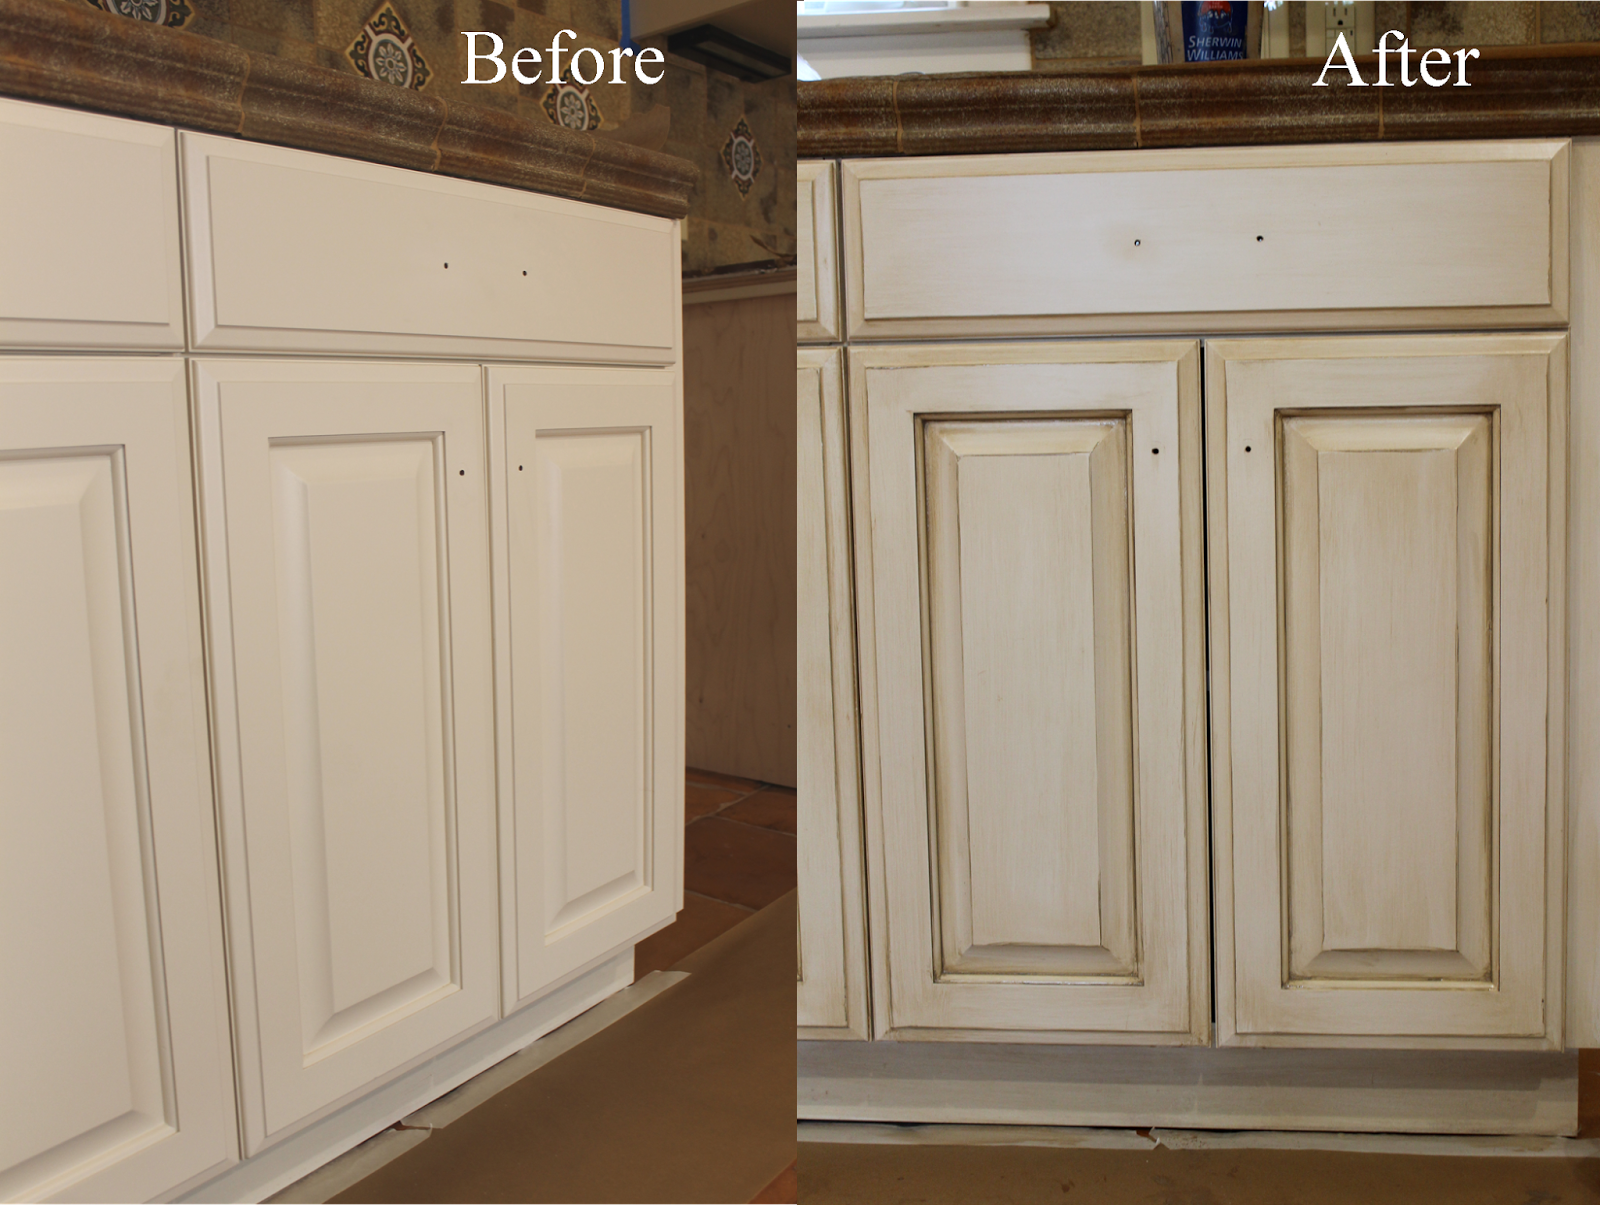 How To Glazing Cabinets Glazed Kitchen Cabinets Glazing